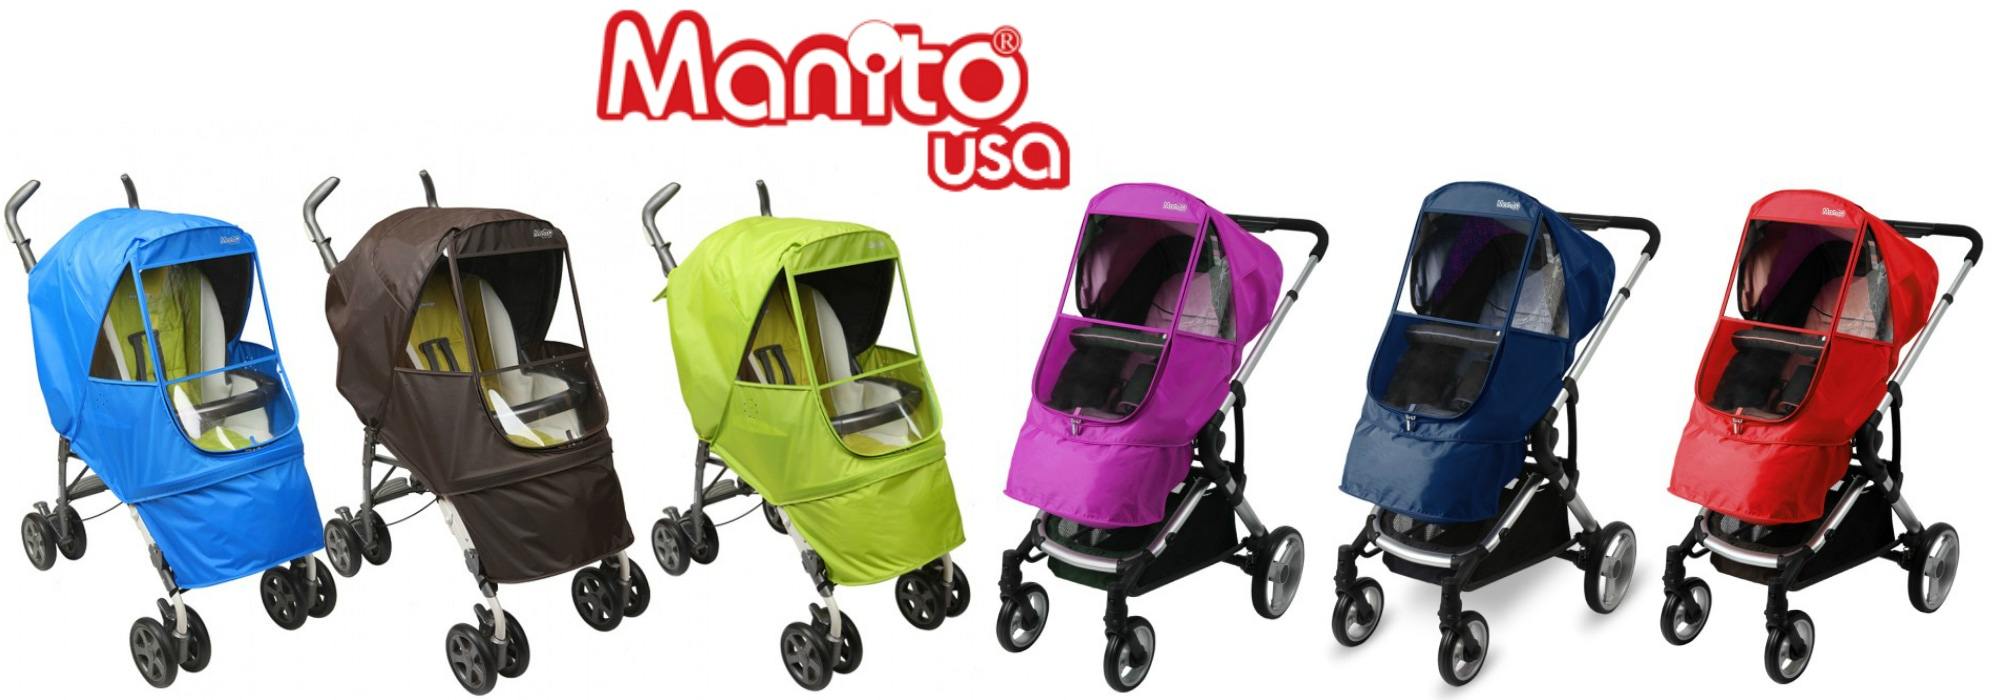 Win a Manito Elegance Stroller Shield in US Japan Fam's $500 value jackpot BEST STROLLER ACCESSORIES GIVEAWAY!